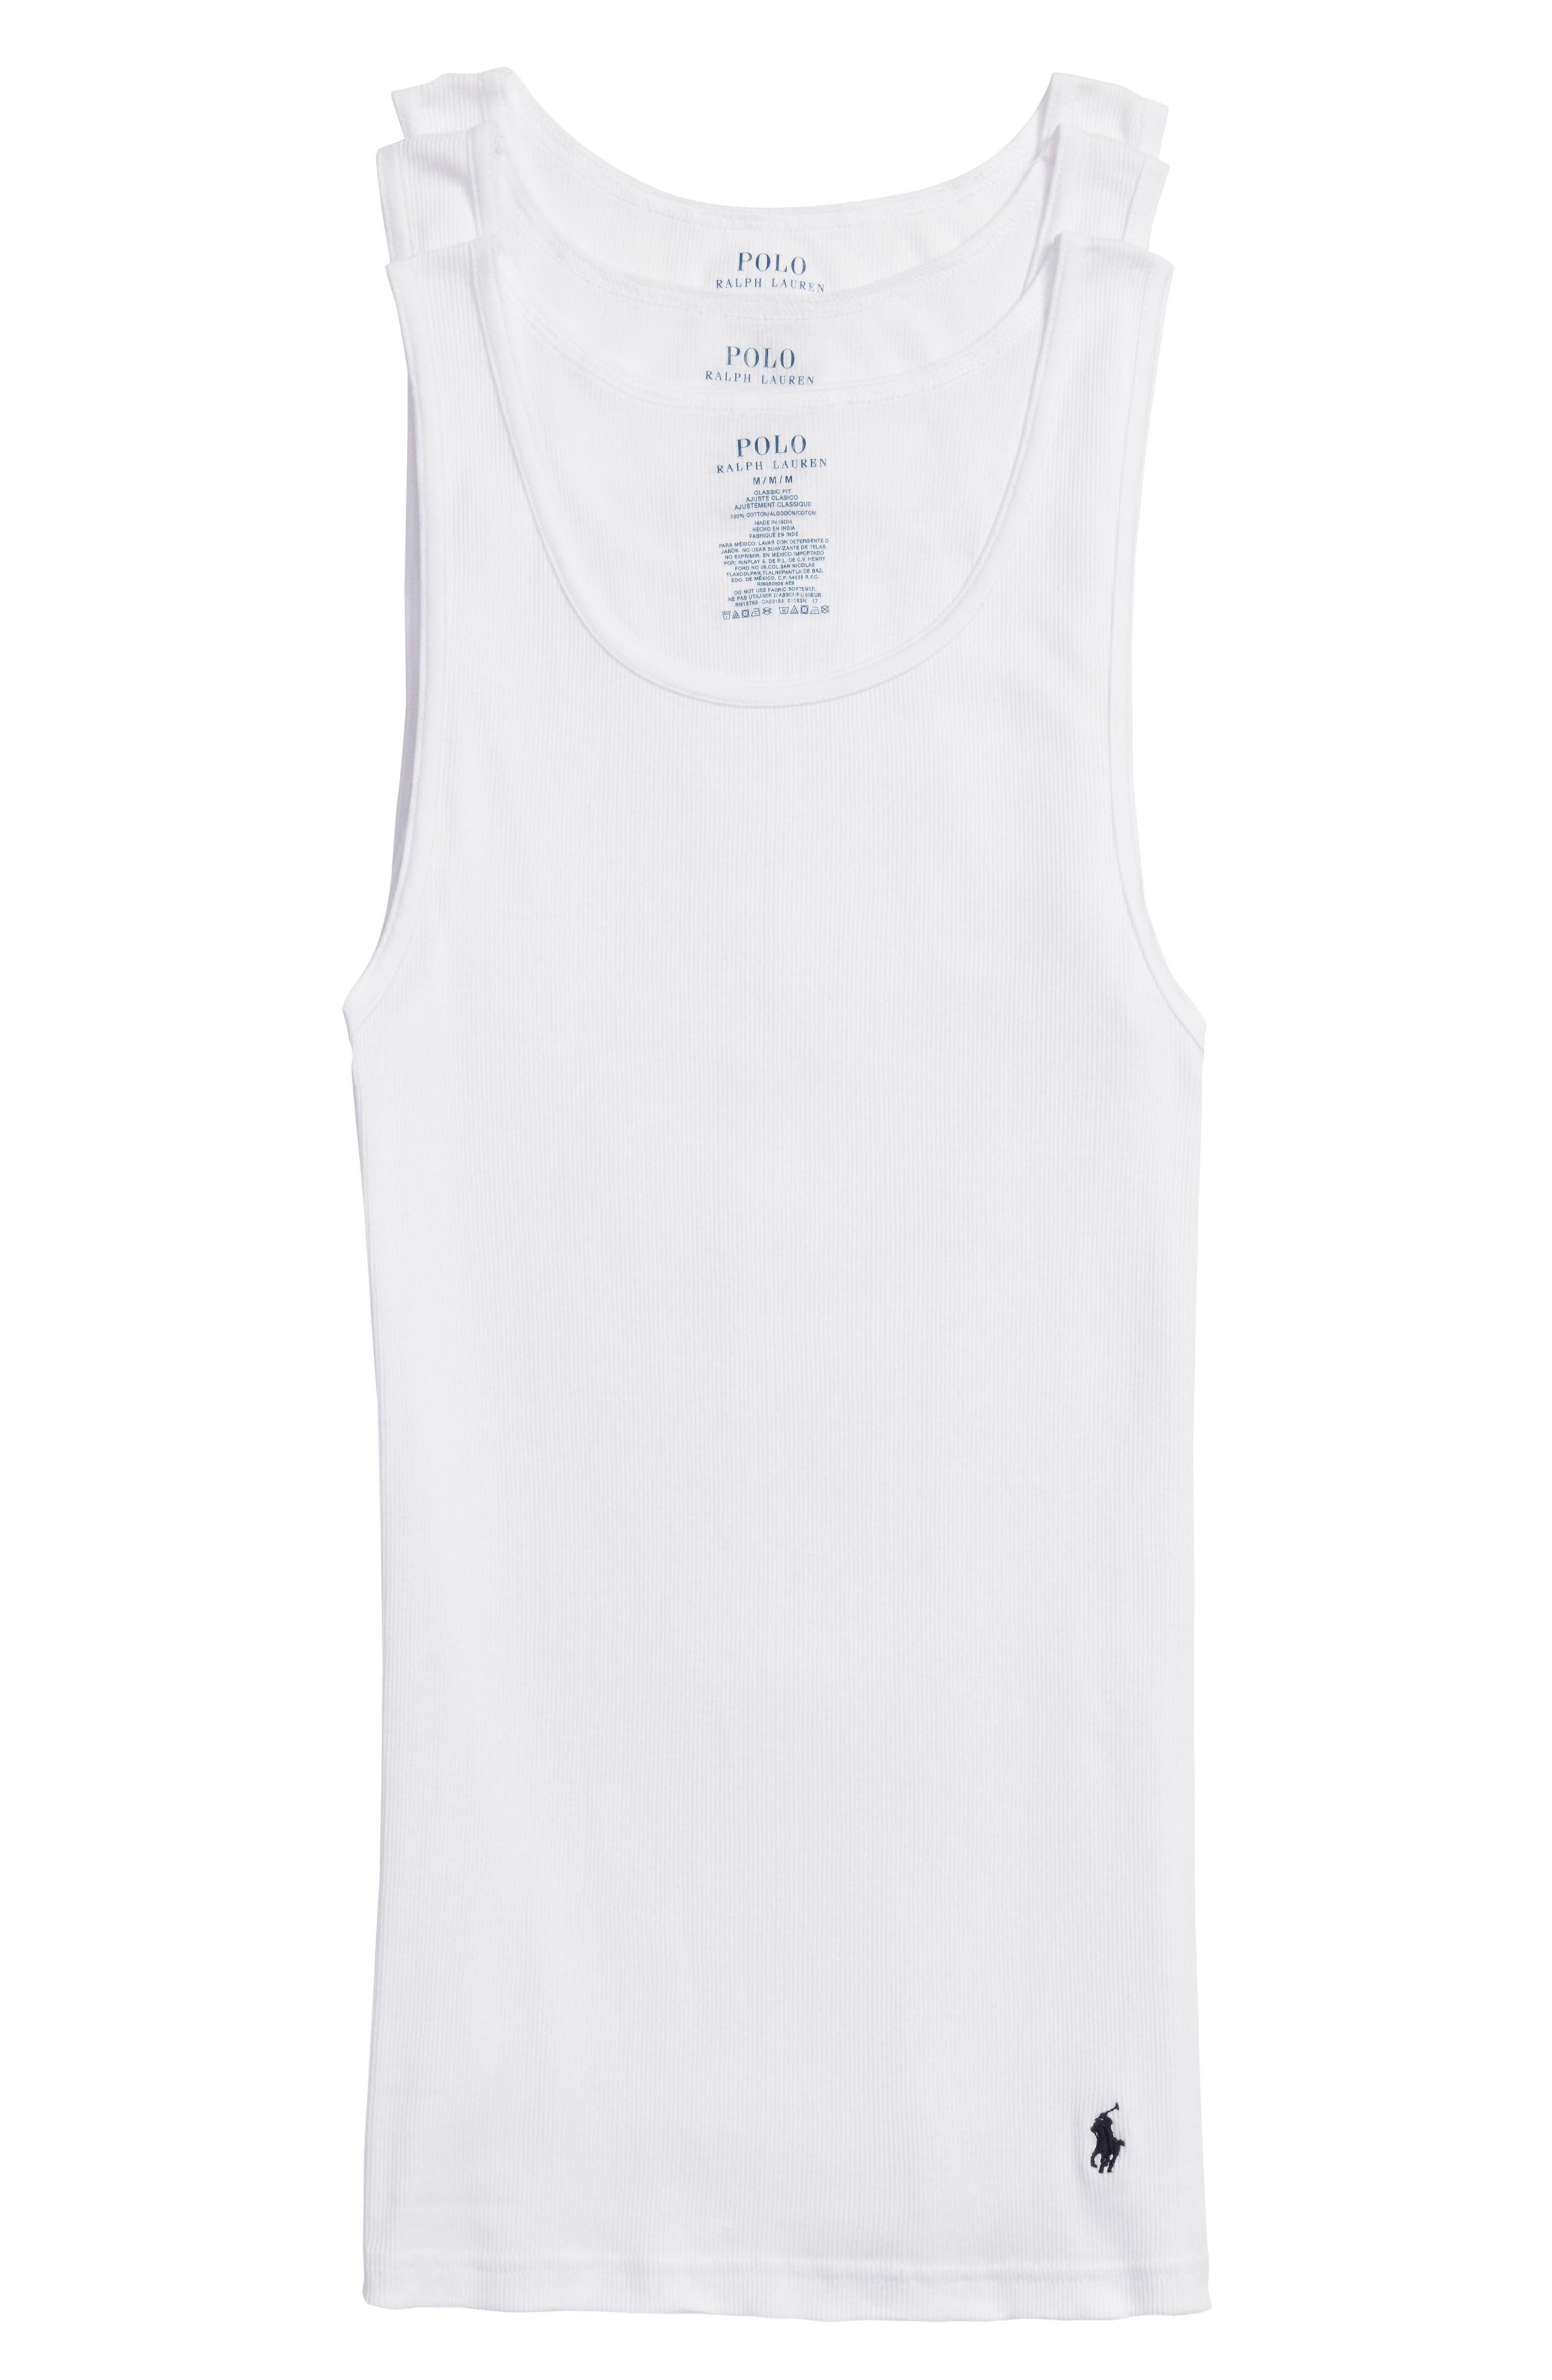 Polo Ralph Lauren 3-Pack Classic Tanks,                         Main,                         color, WHITE